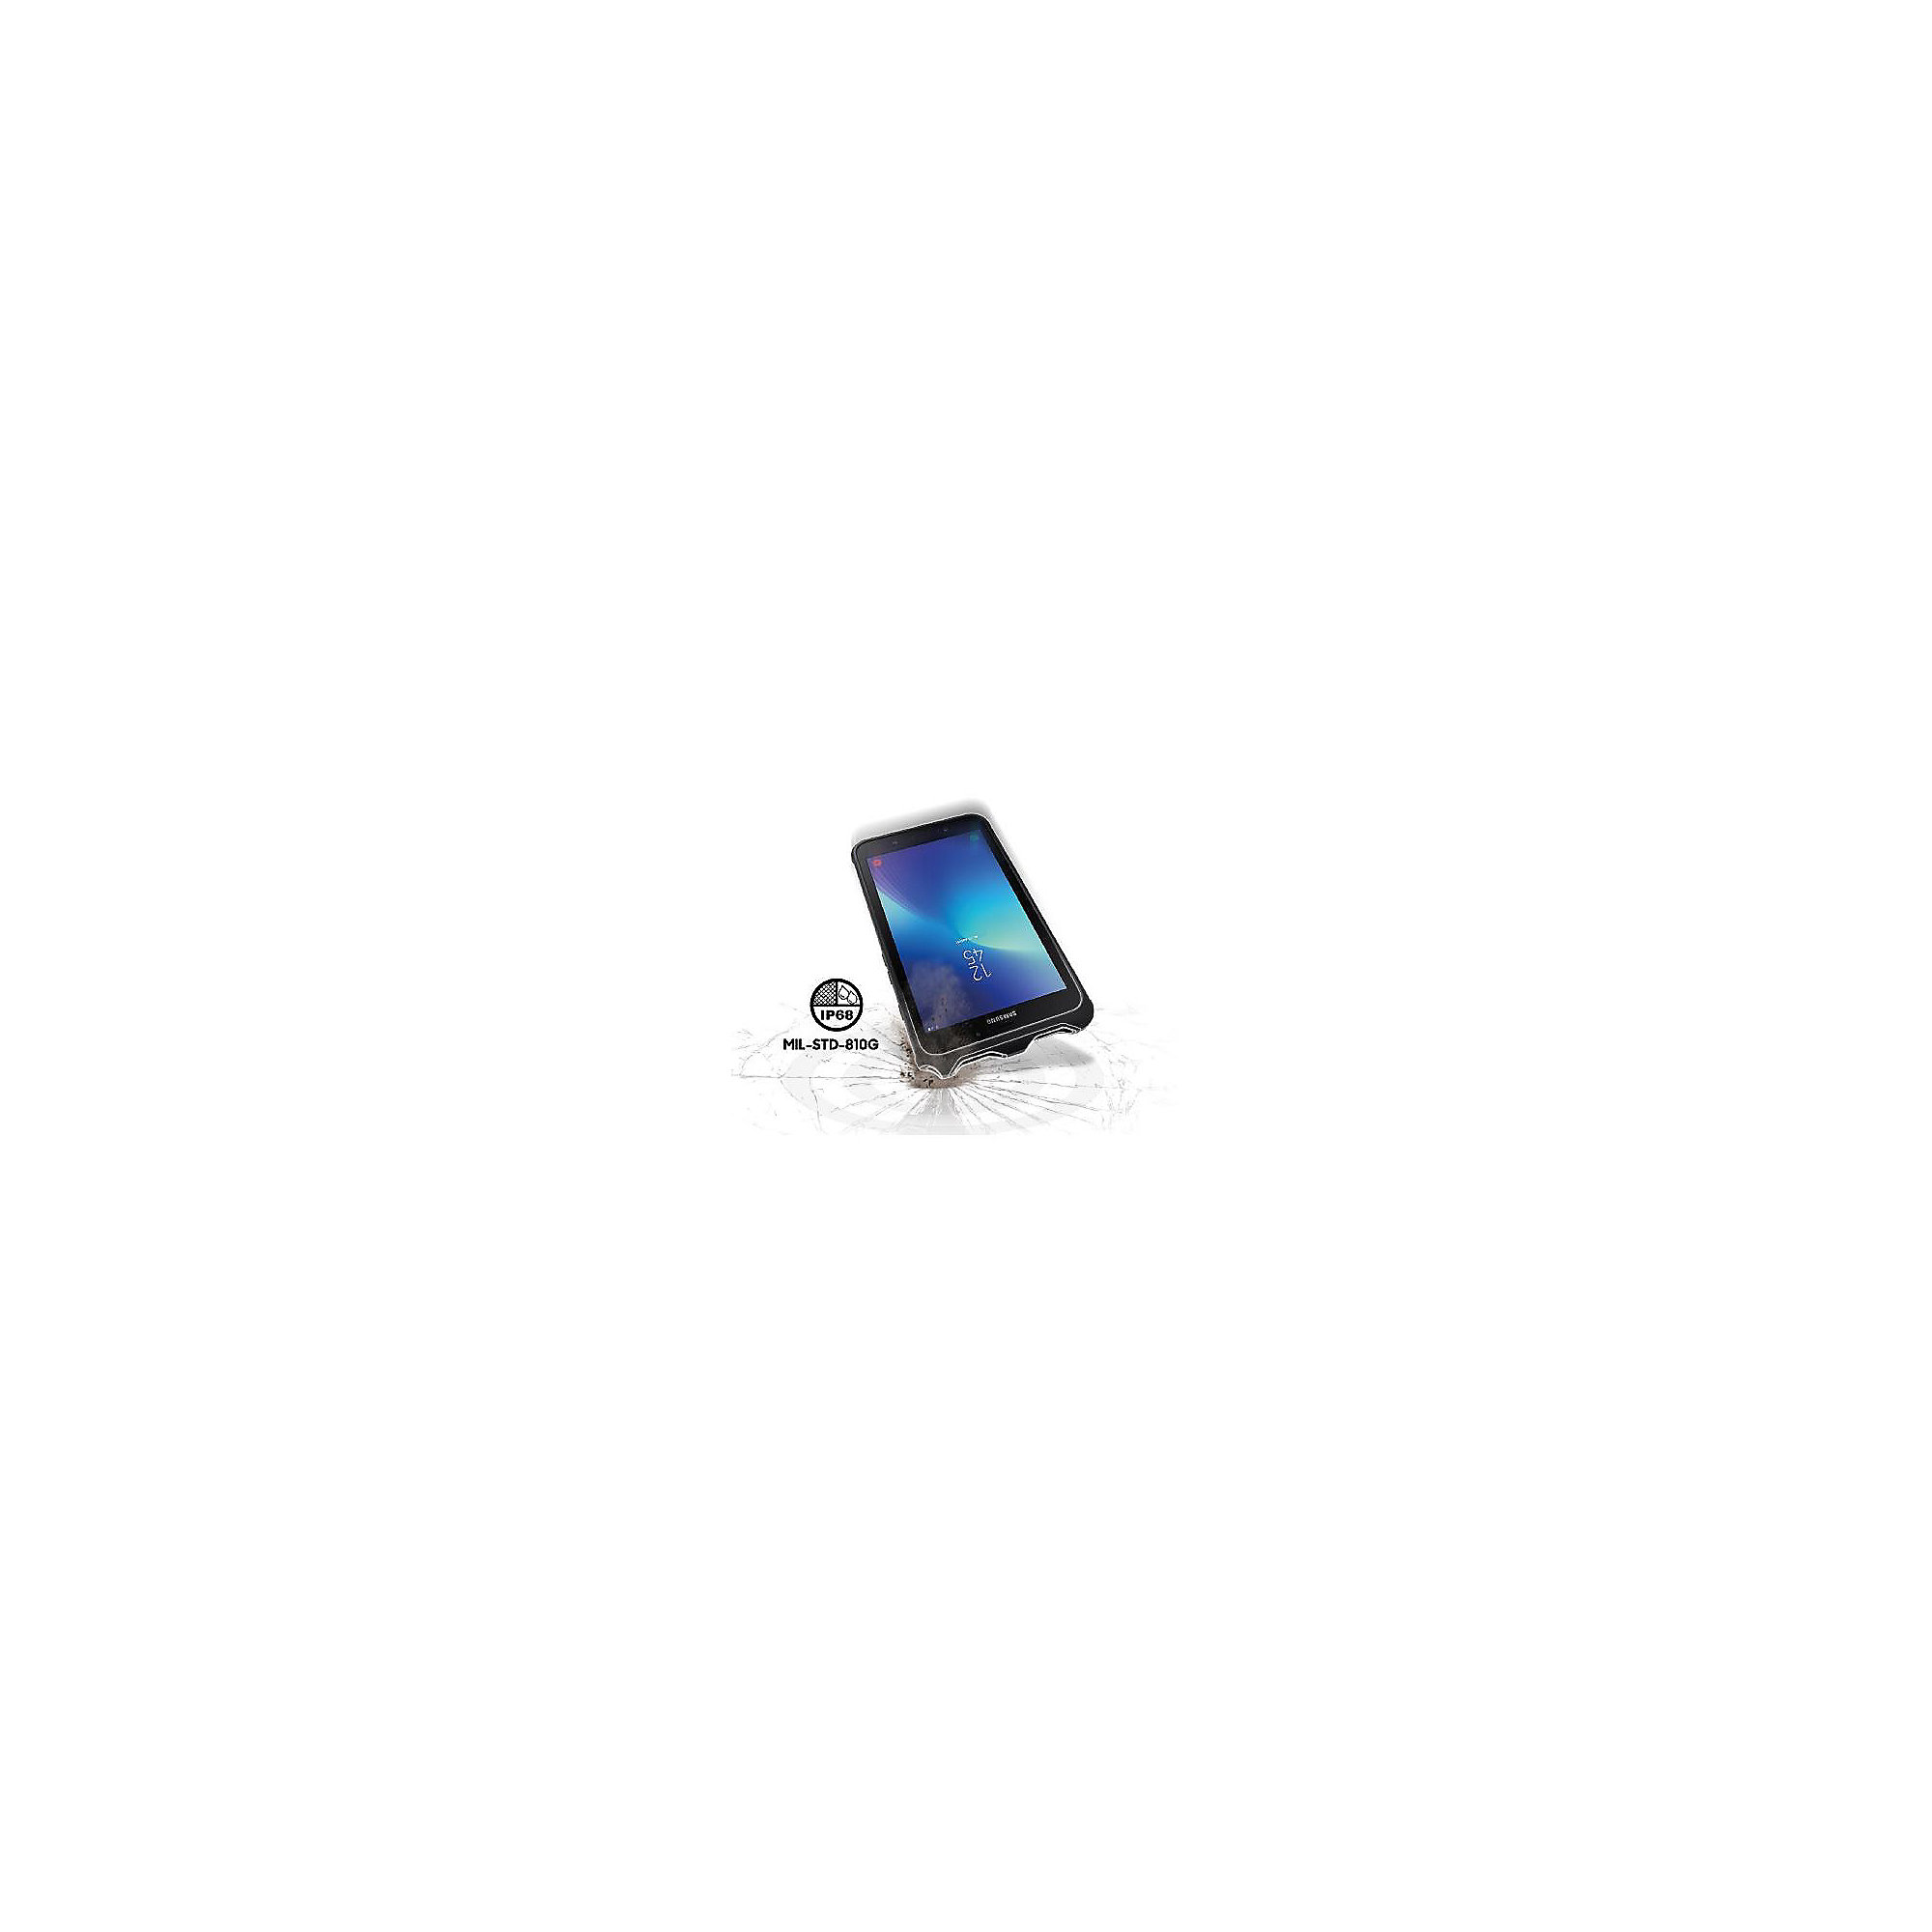 Samsung GALAXY Tab Active2 8.0 T395N Tablet 16 GB LTE